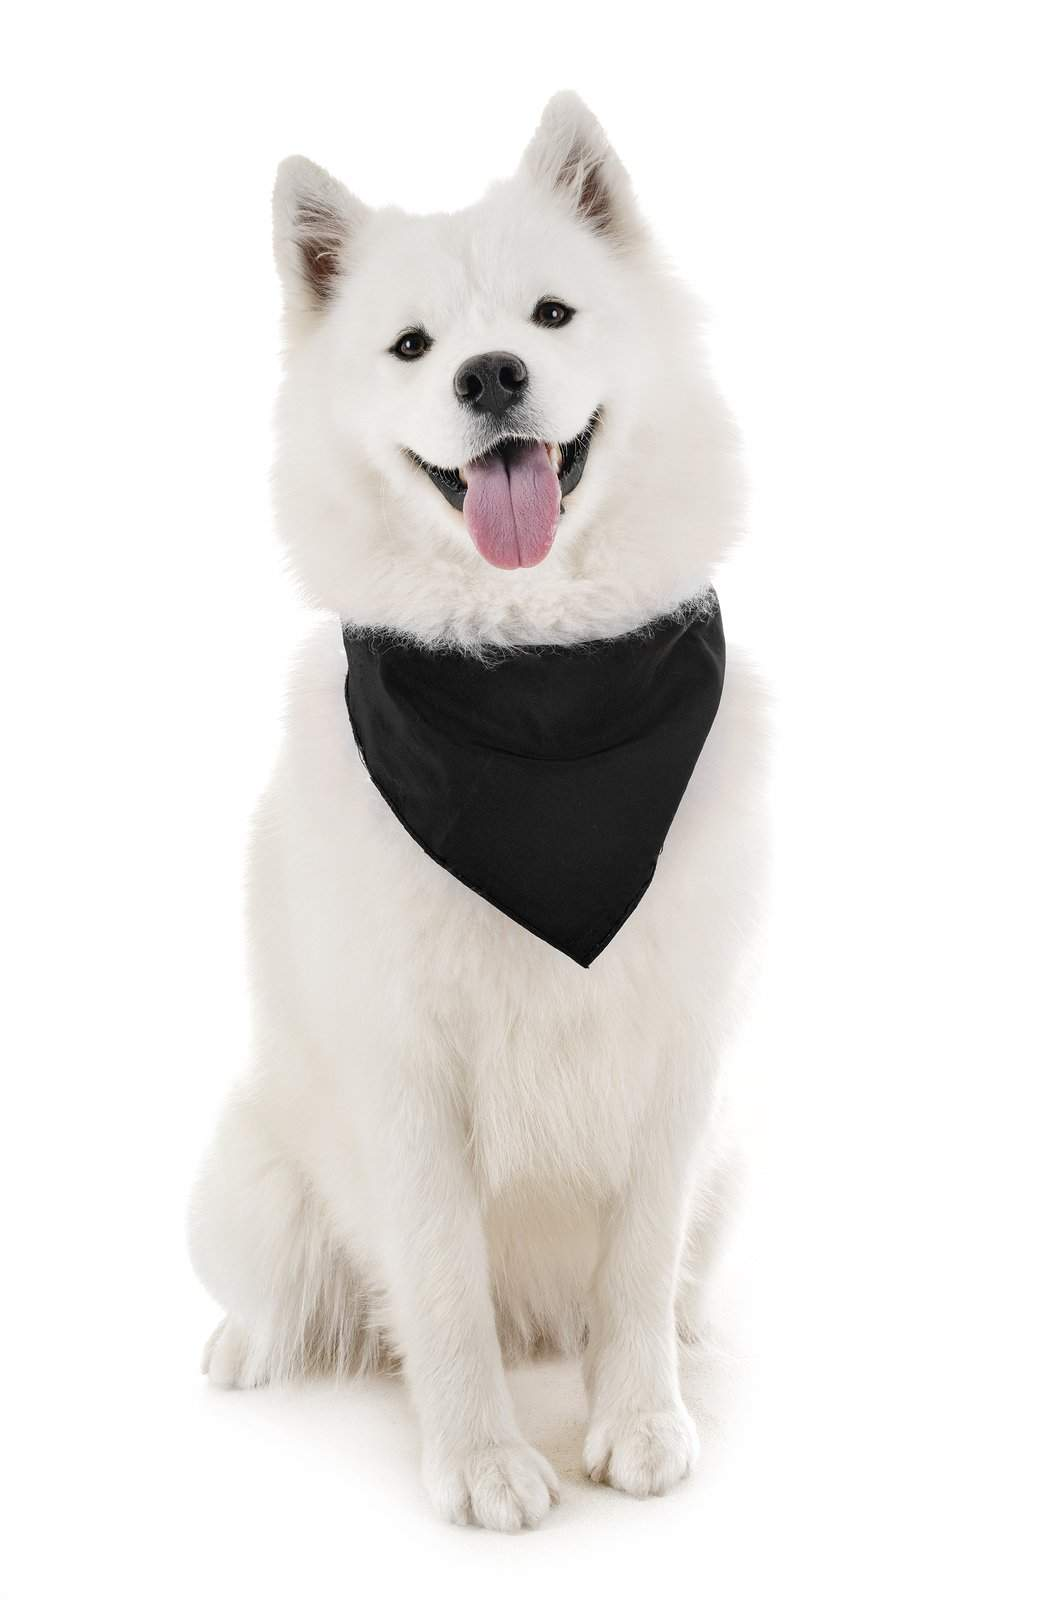 Dog Bandanas - 6 Pack - Scarf Triangle Bibs for Small, Medium and Large Puppies, Dogs and Cats